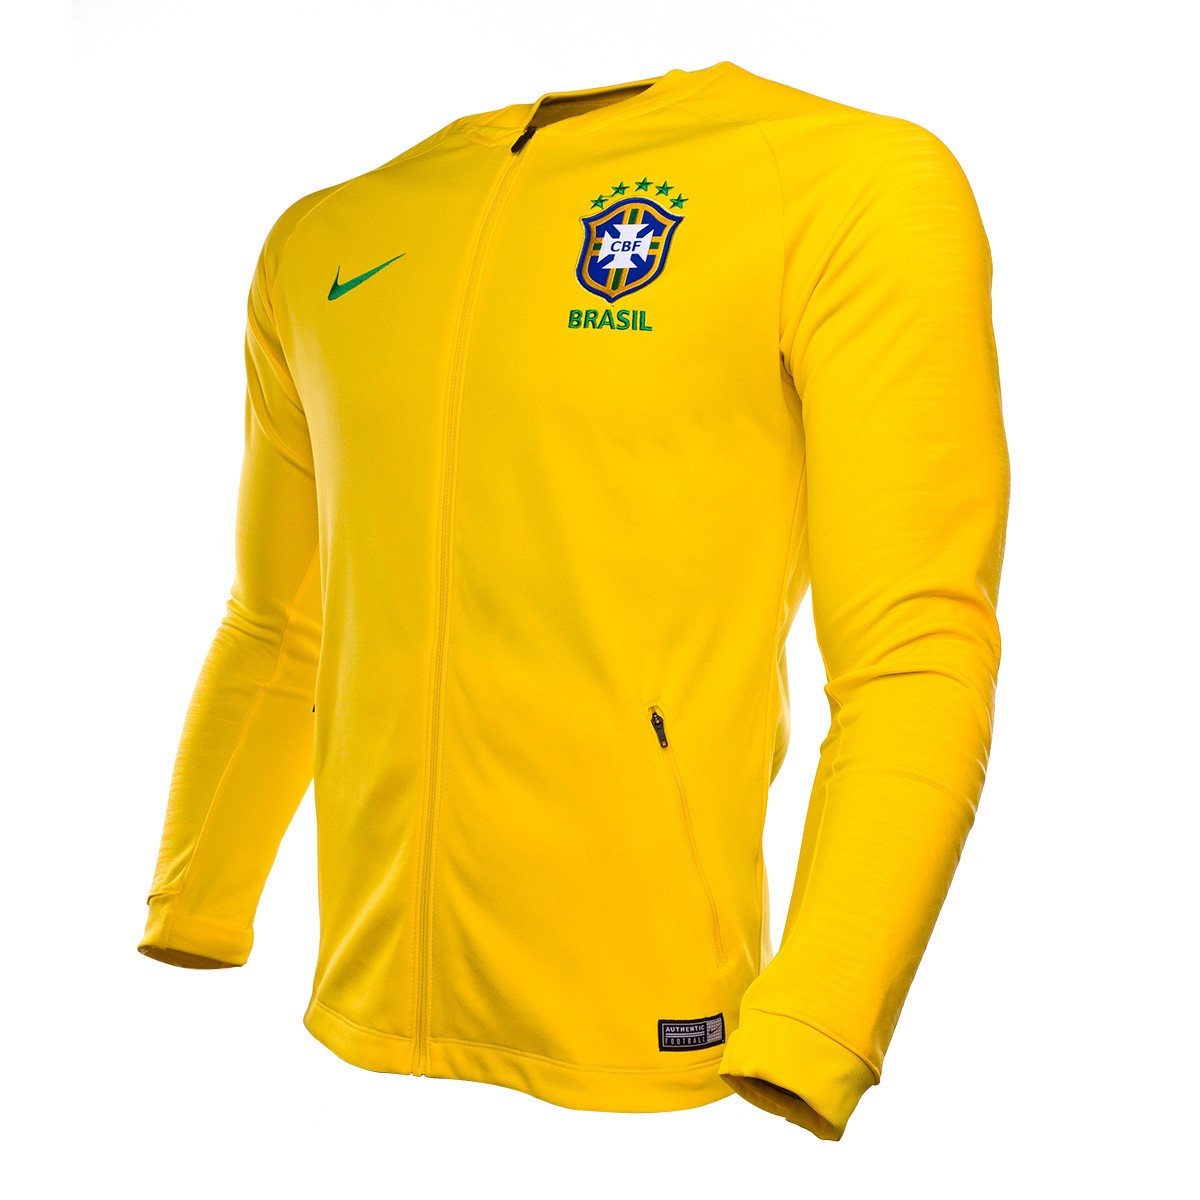 9d60193afb6 Jacket Nike Brazil Pre-Match 2018-2019 Midwest gold-Varsity maize ...